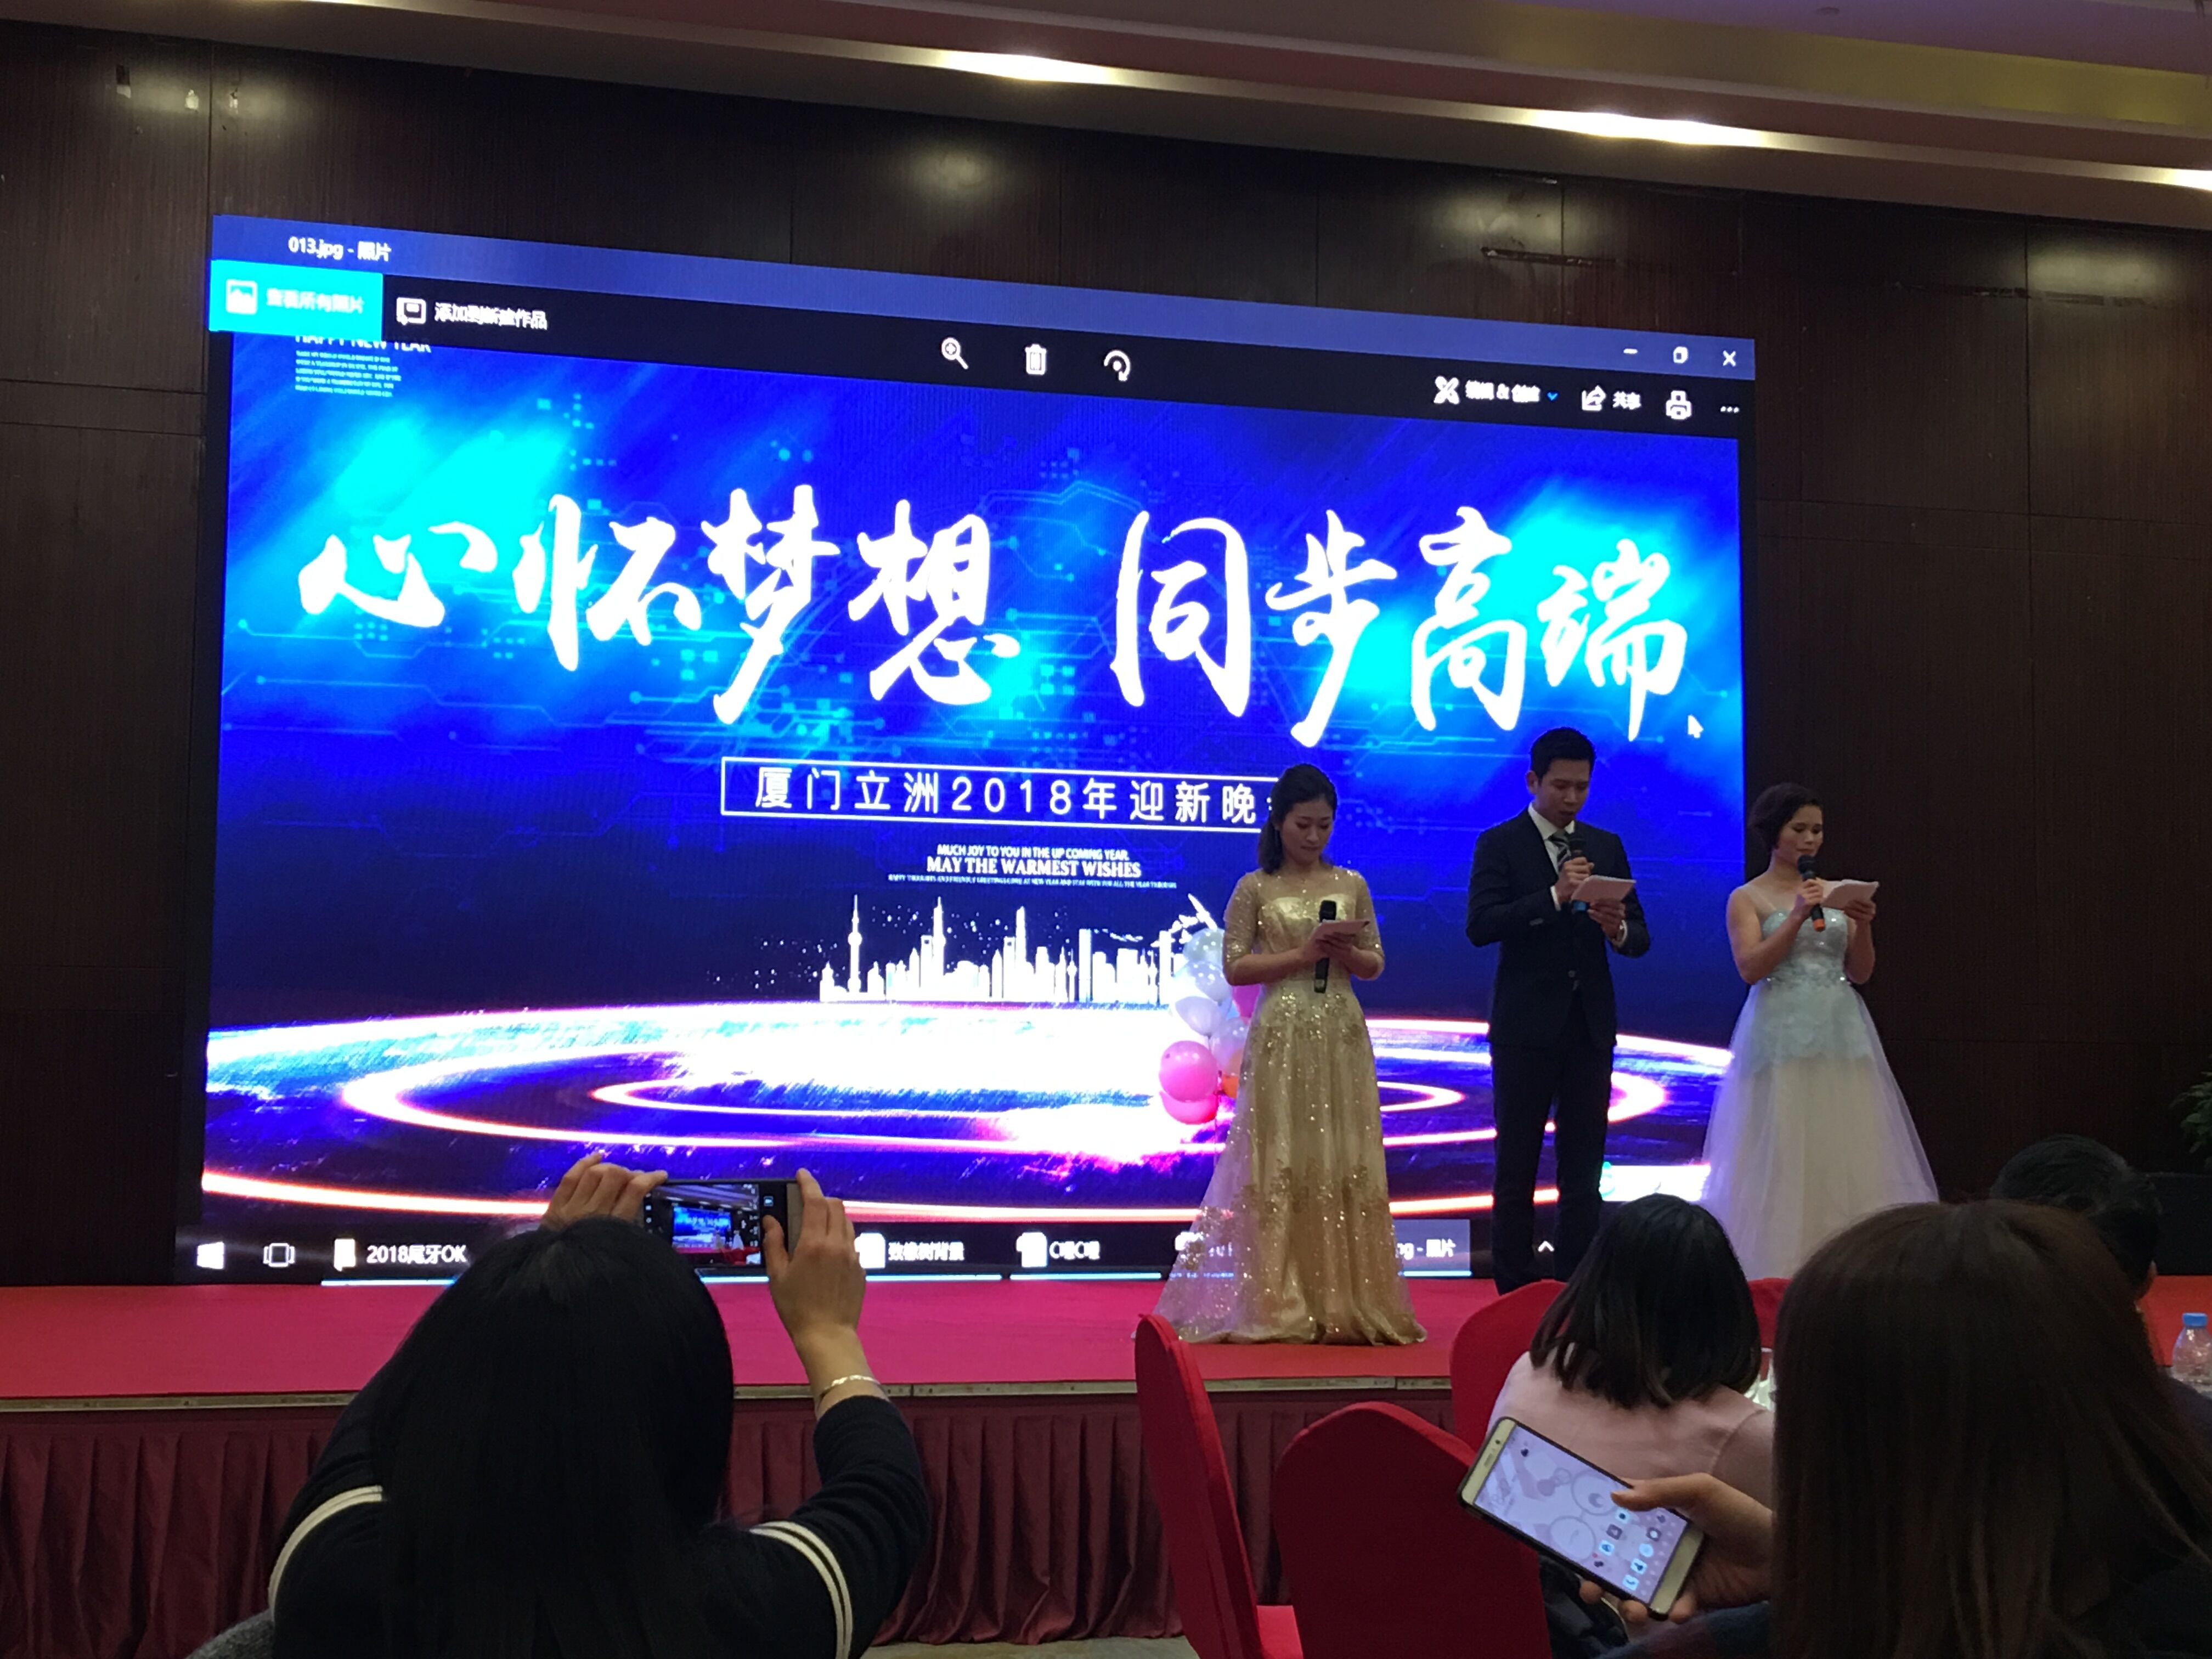 Xiamen Lizhou Company New Year Party Was Held